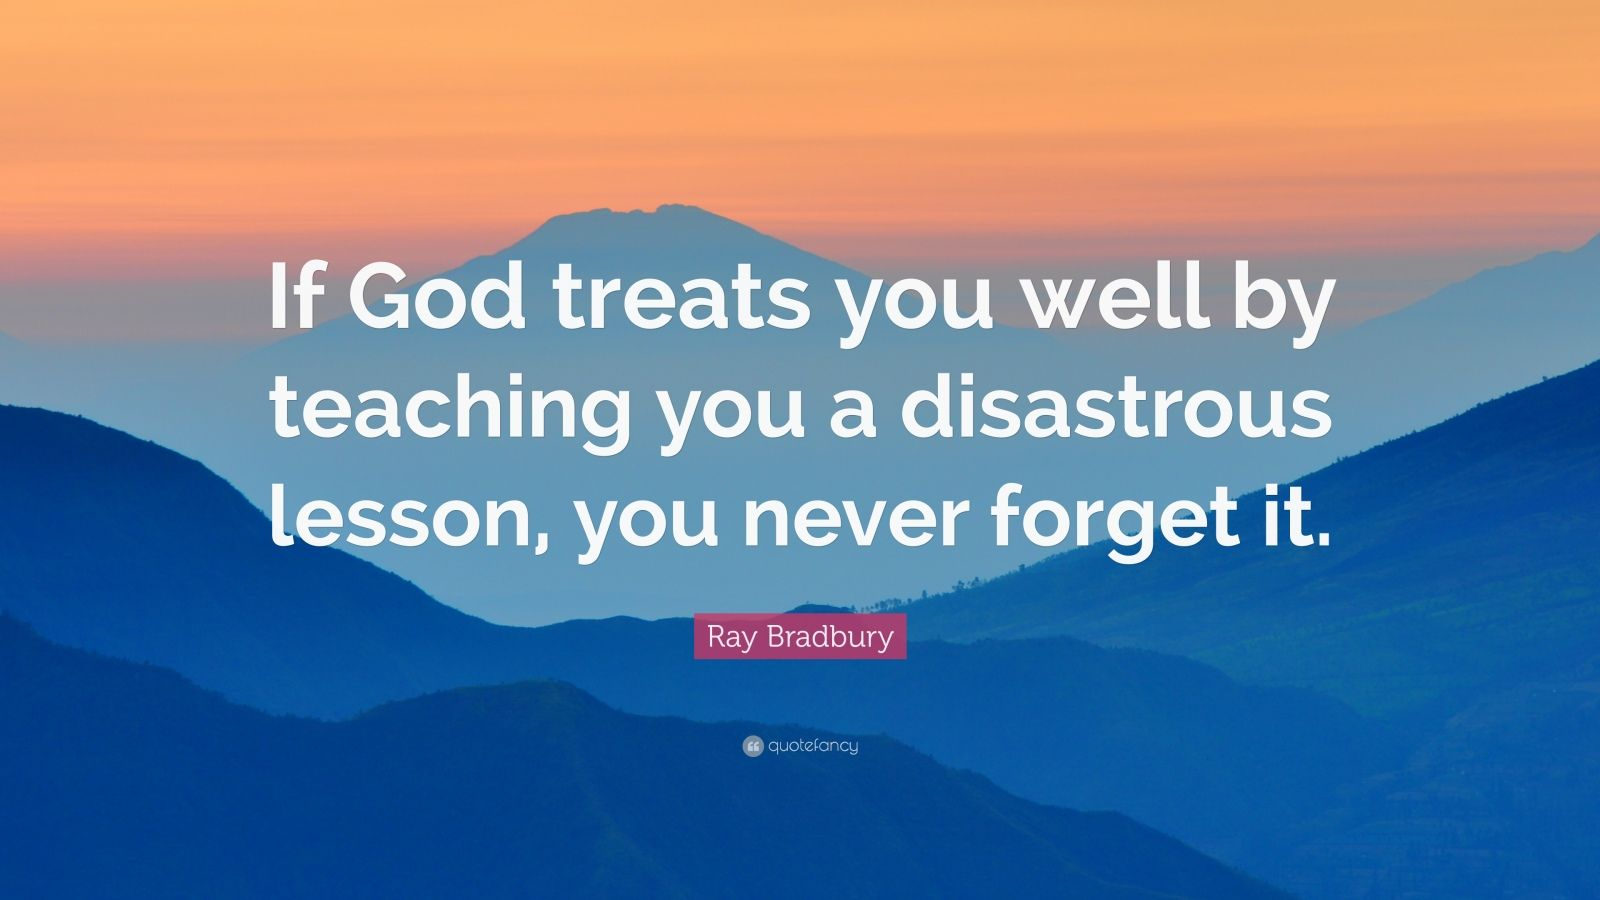 """Ray Bradbury Quote: """"If God treats you well by teaching you a disastrous lesson, you never forget it."""""""